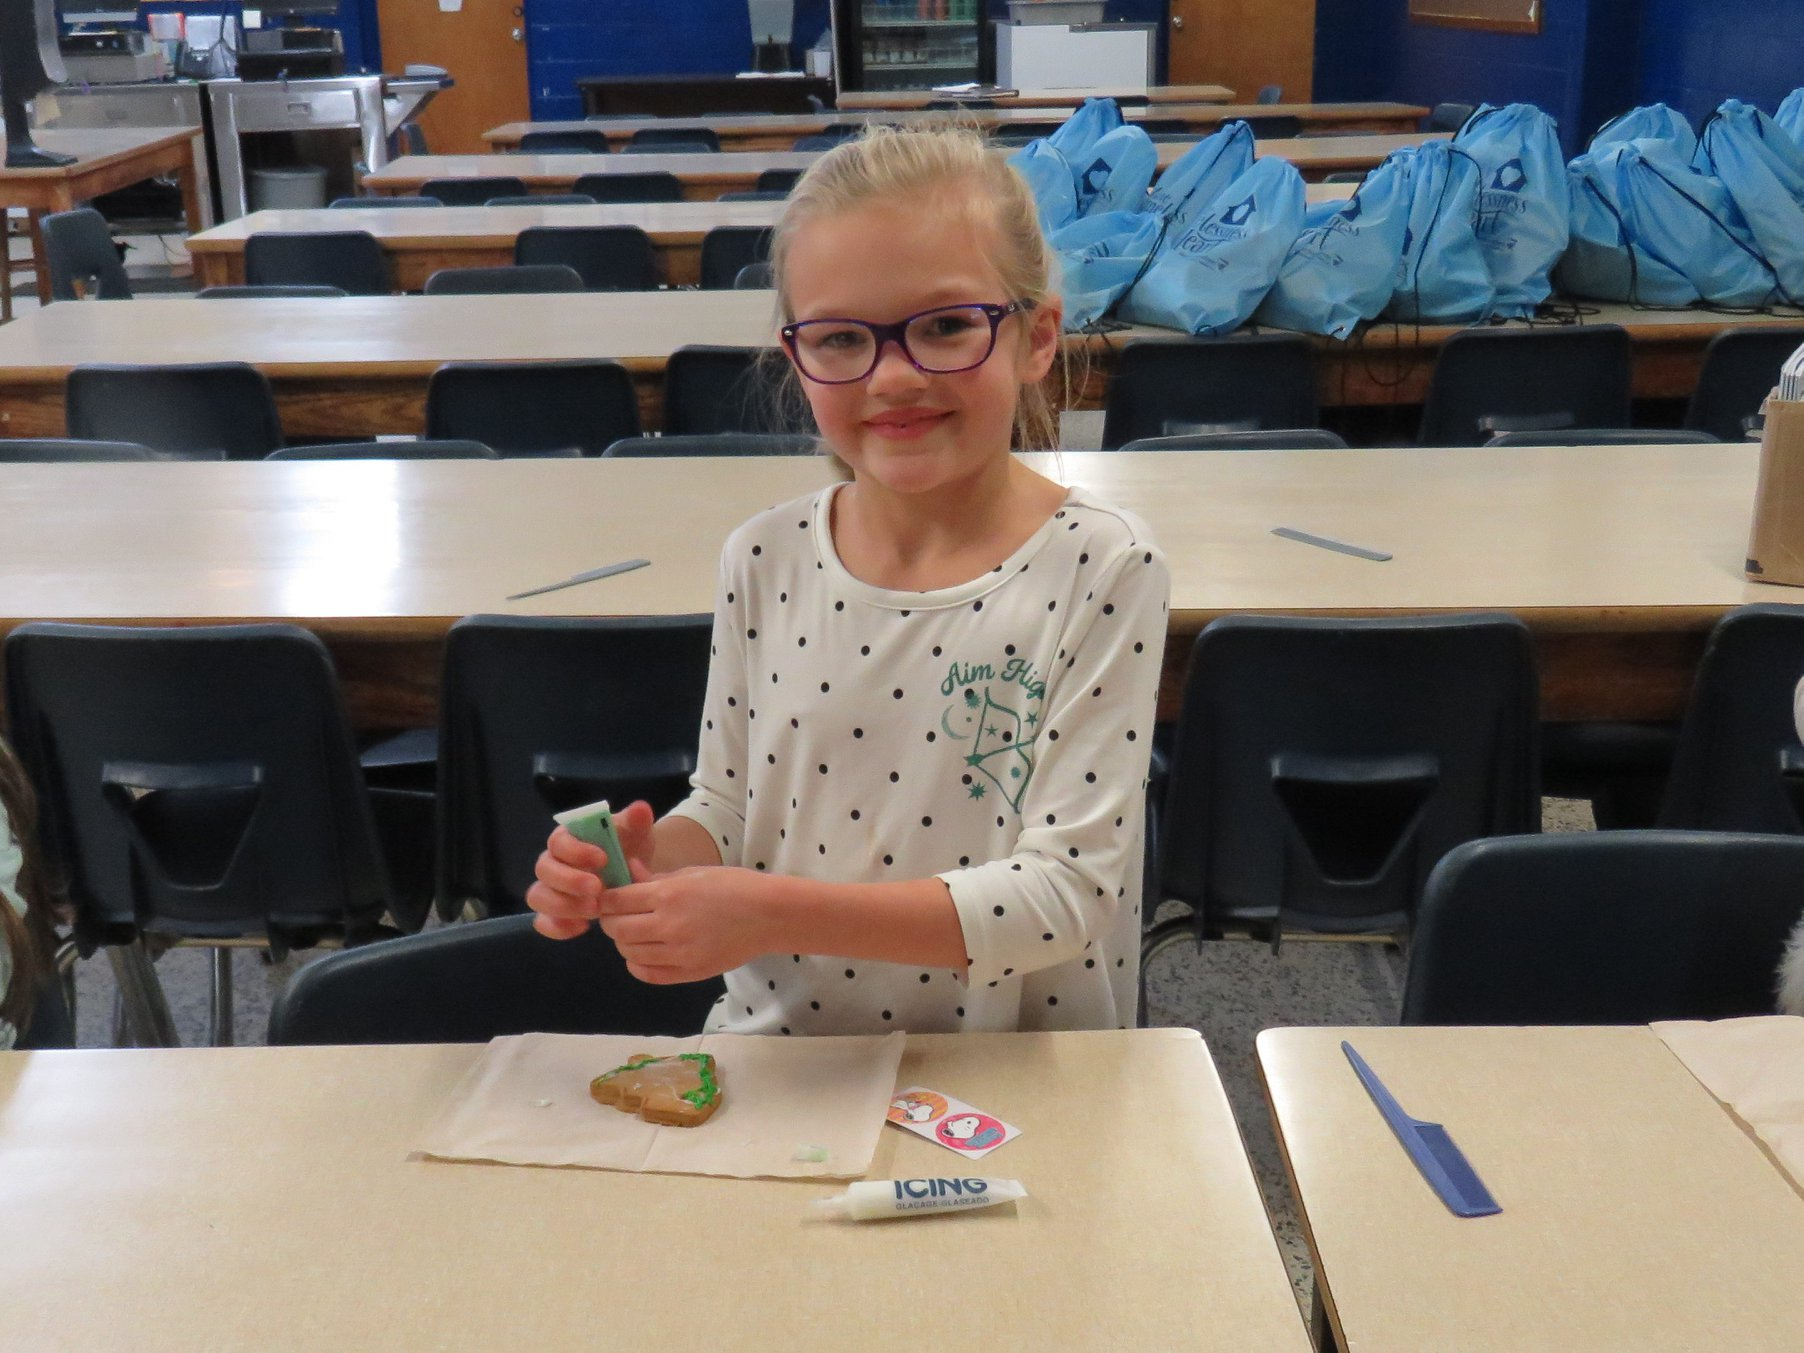 Image of girl decorating cookies